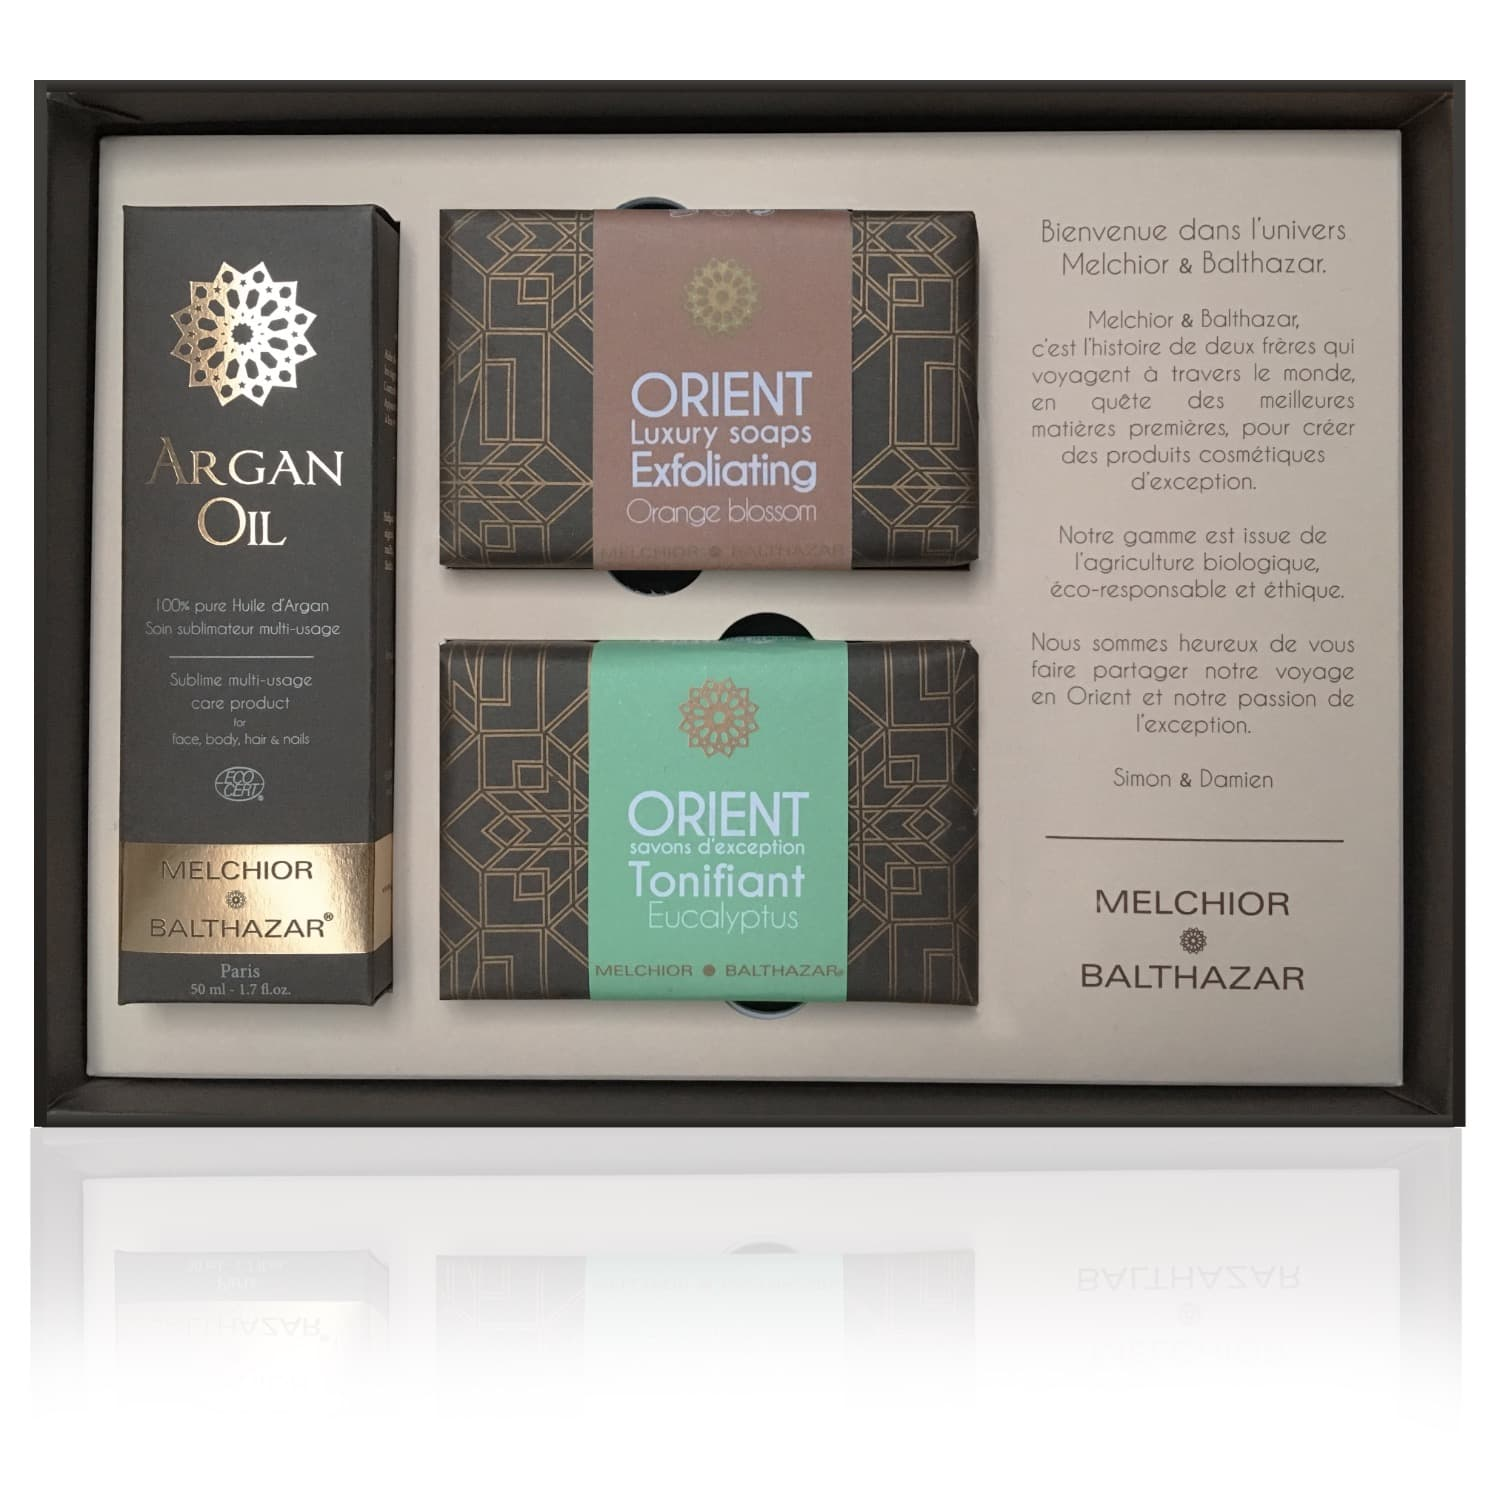 Exception Gift Box (pure 50 ml Argan Oil bottle + Luxury Tonifying  Eucalyptus and Exfoliating Orange Blossom Creamy Soaps) by Melchior &  Balthazar